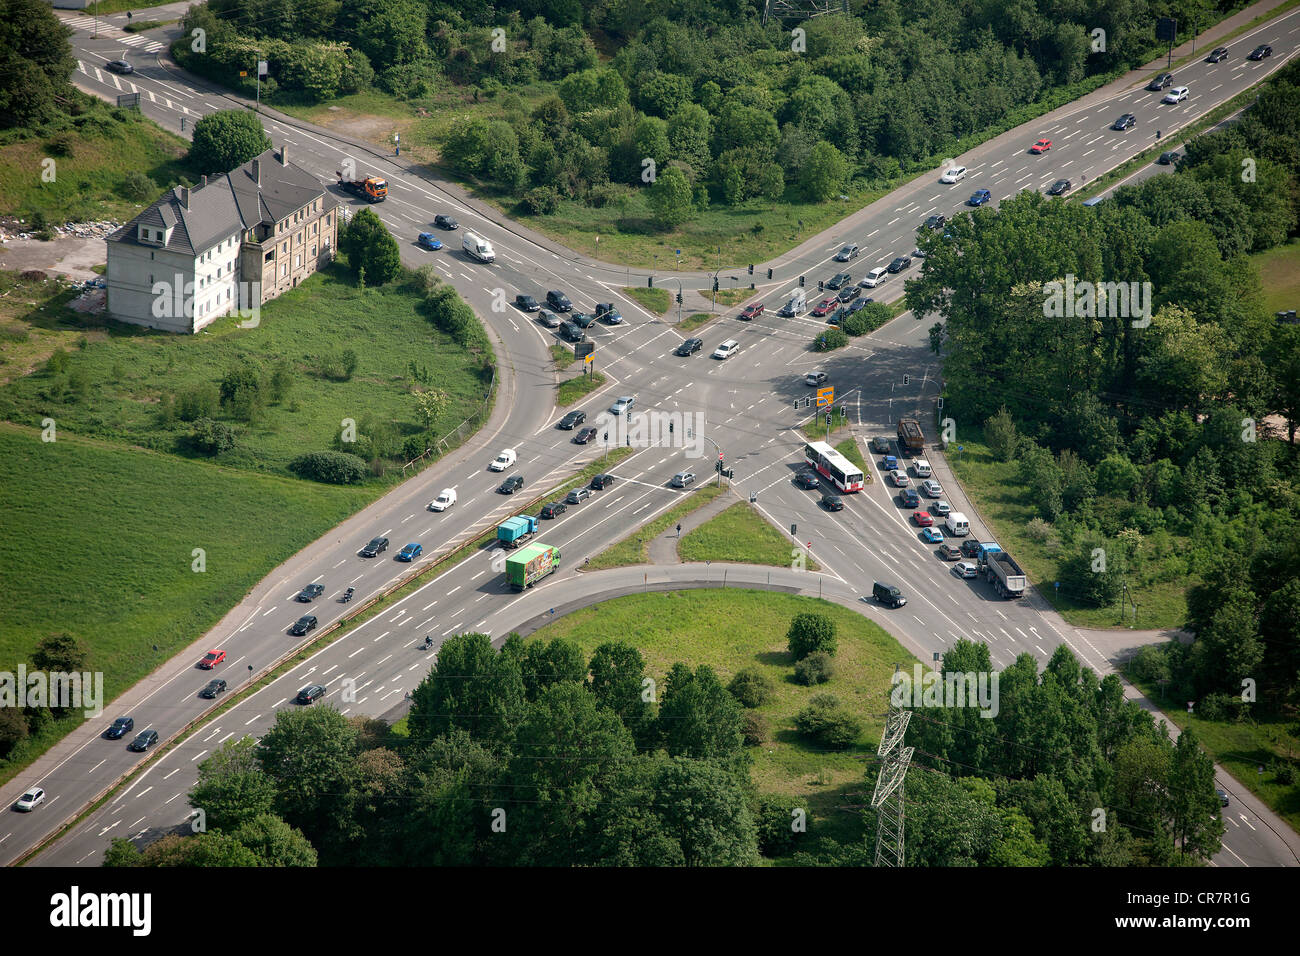 Aerial view, crossroads, Prosperstrasse street, Arensbergstrasse street, B224 federal highway, Bottrop-Boy, Ruhr - Stock Image